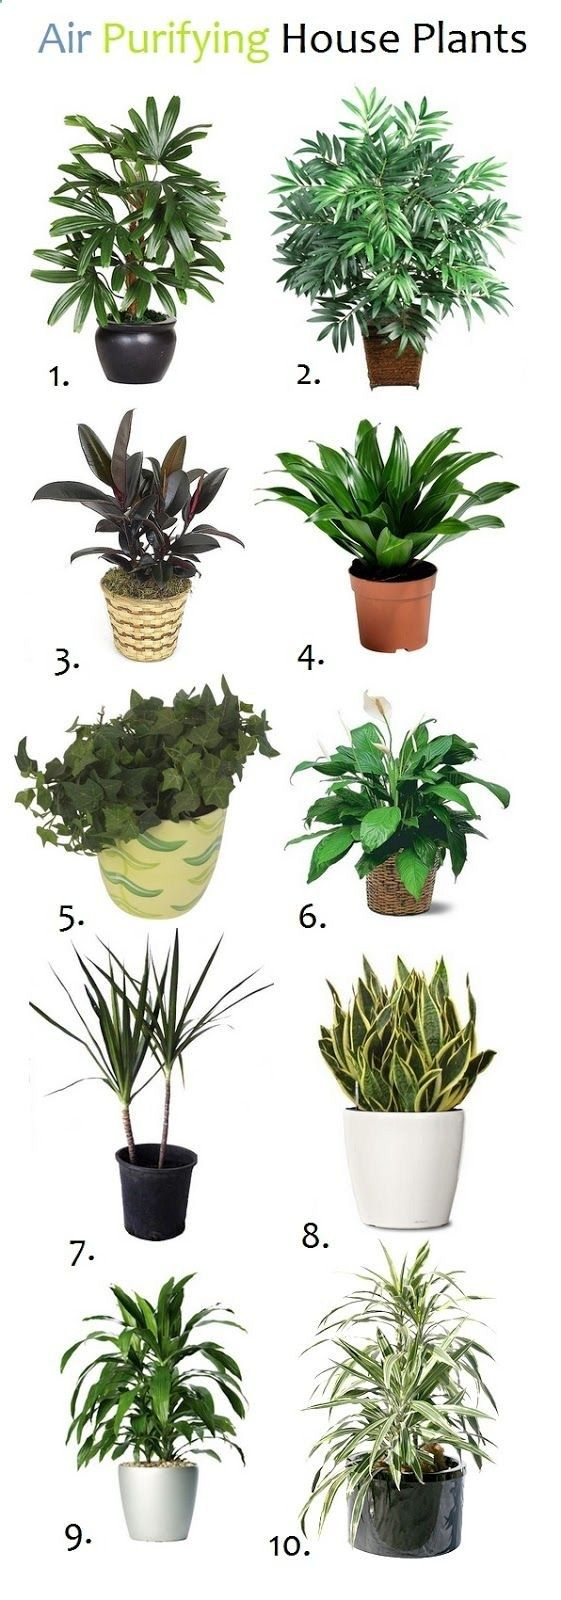 10 Air Purifying House Plants - Is it possible to have too many house plants?